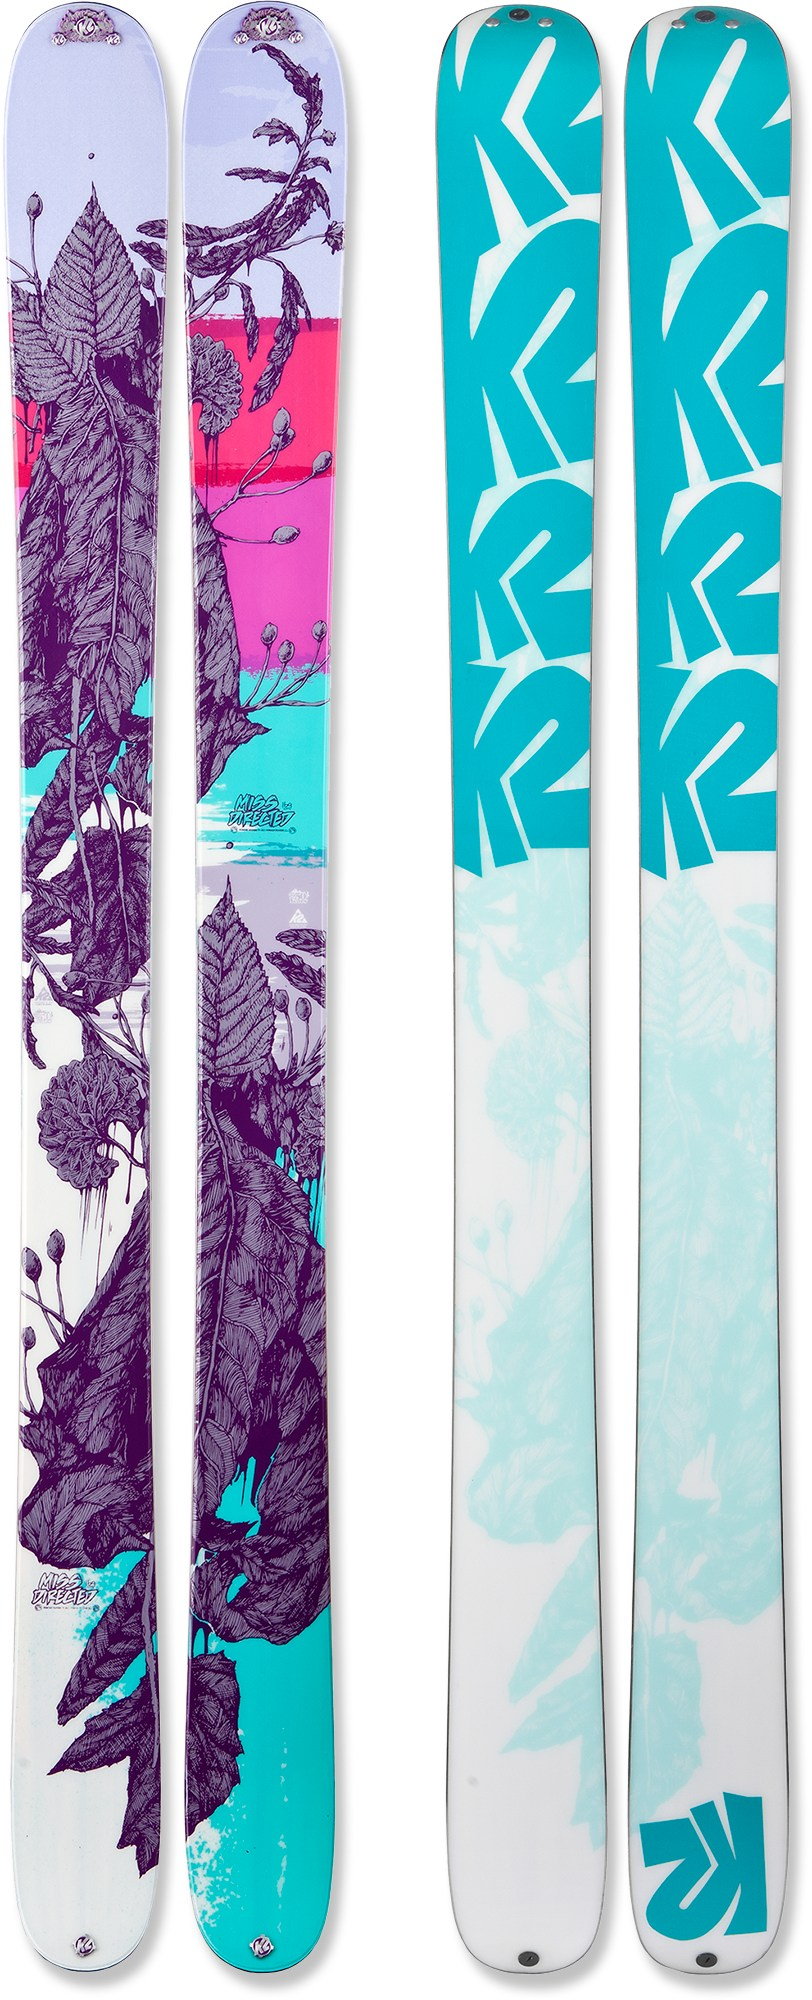 Ski K2 MissDirected Skis - Women's - 2012/2013 $699